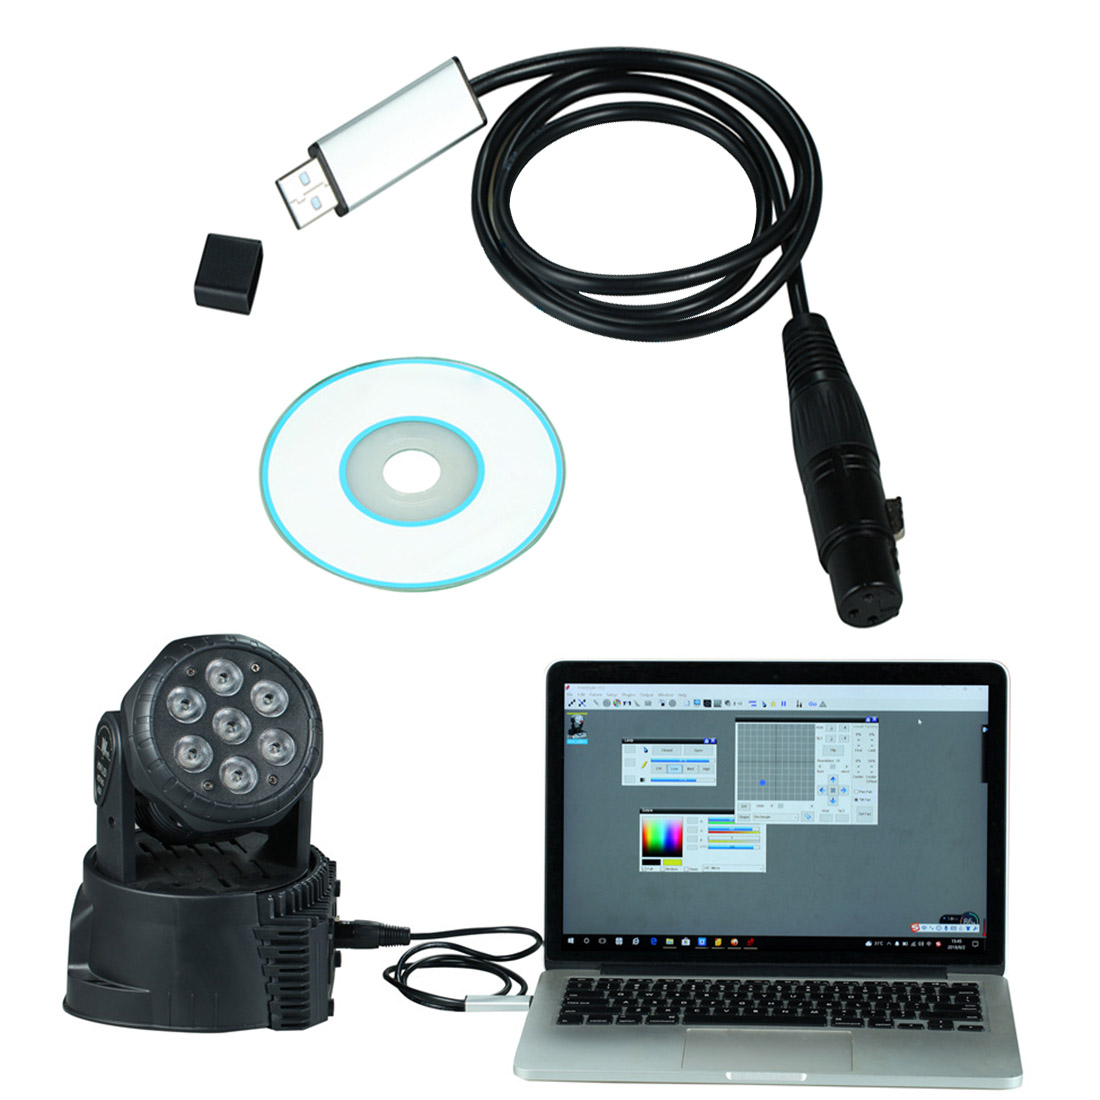 DMX USB Signal Conversion USB To DMX Interface Adapter Cable 110cm Length Stage Light PC DMX512 Controller Dimmer